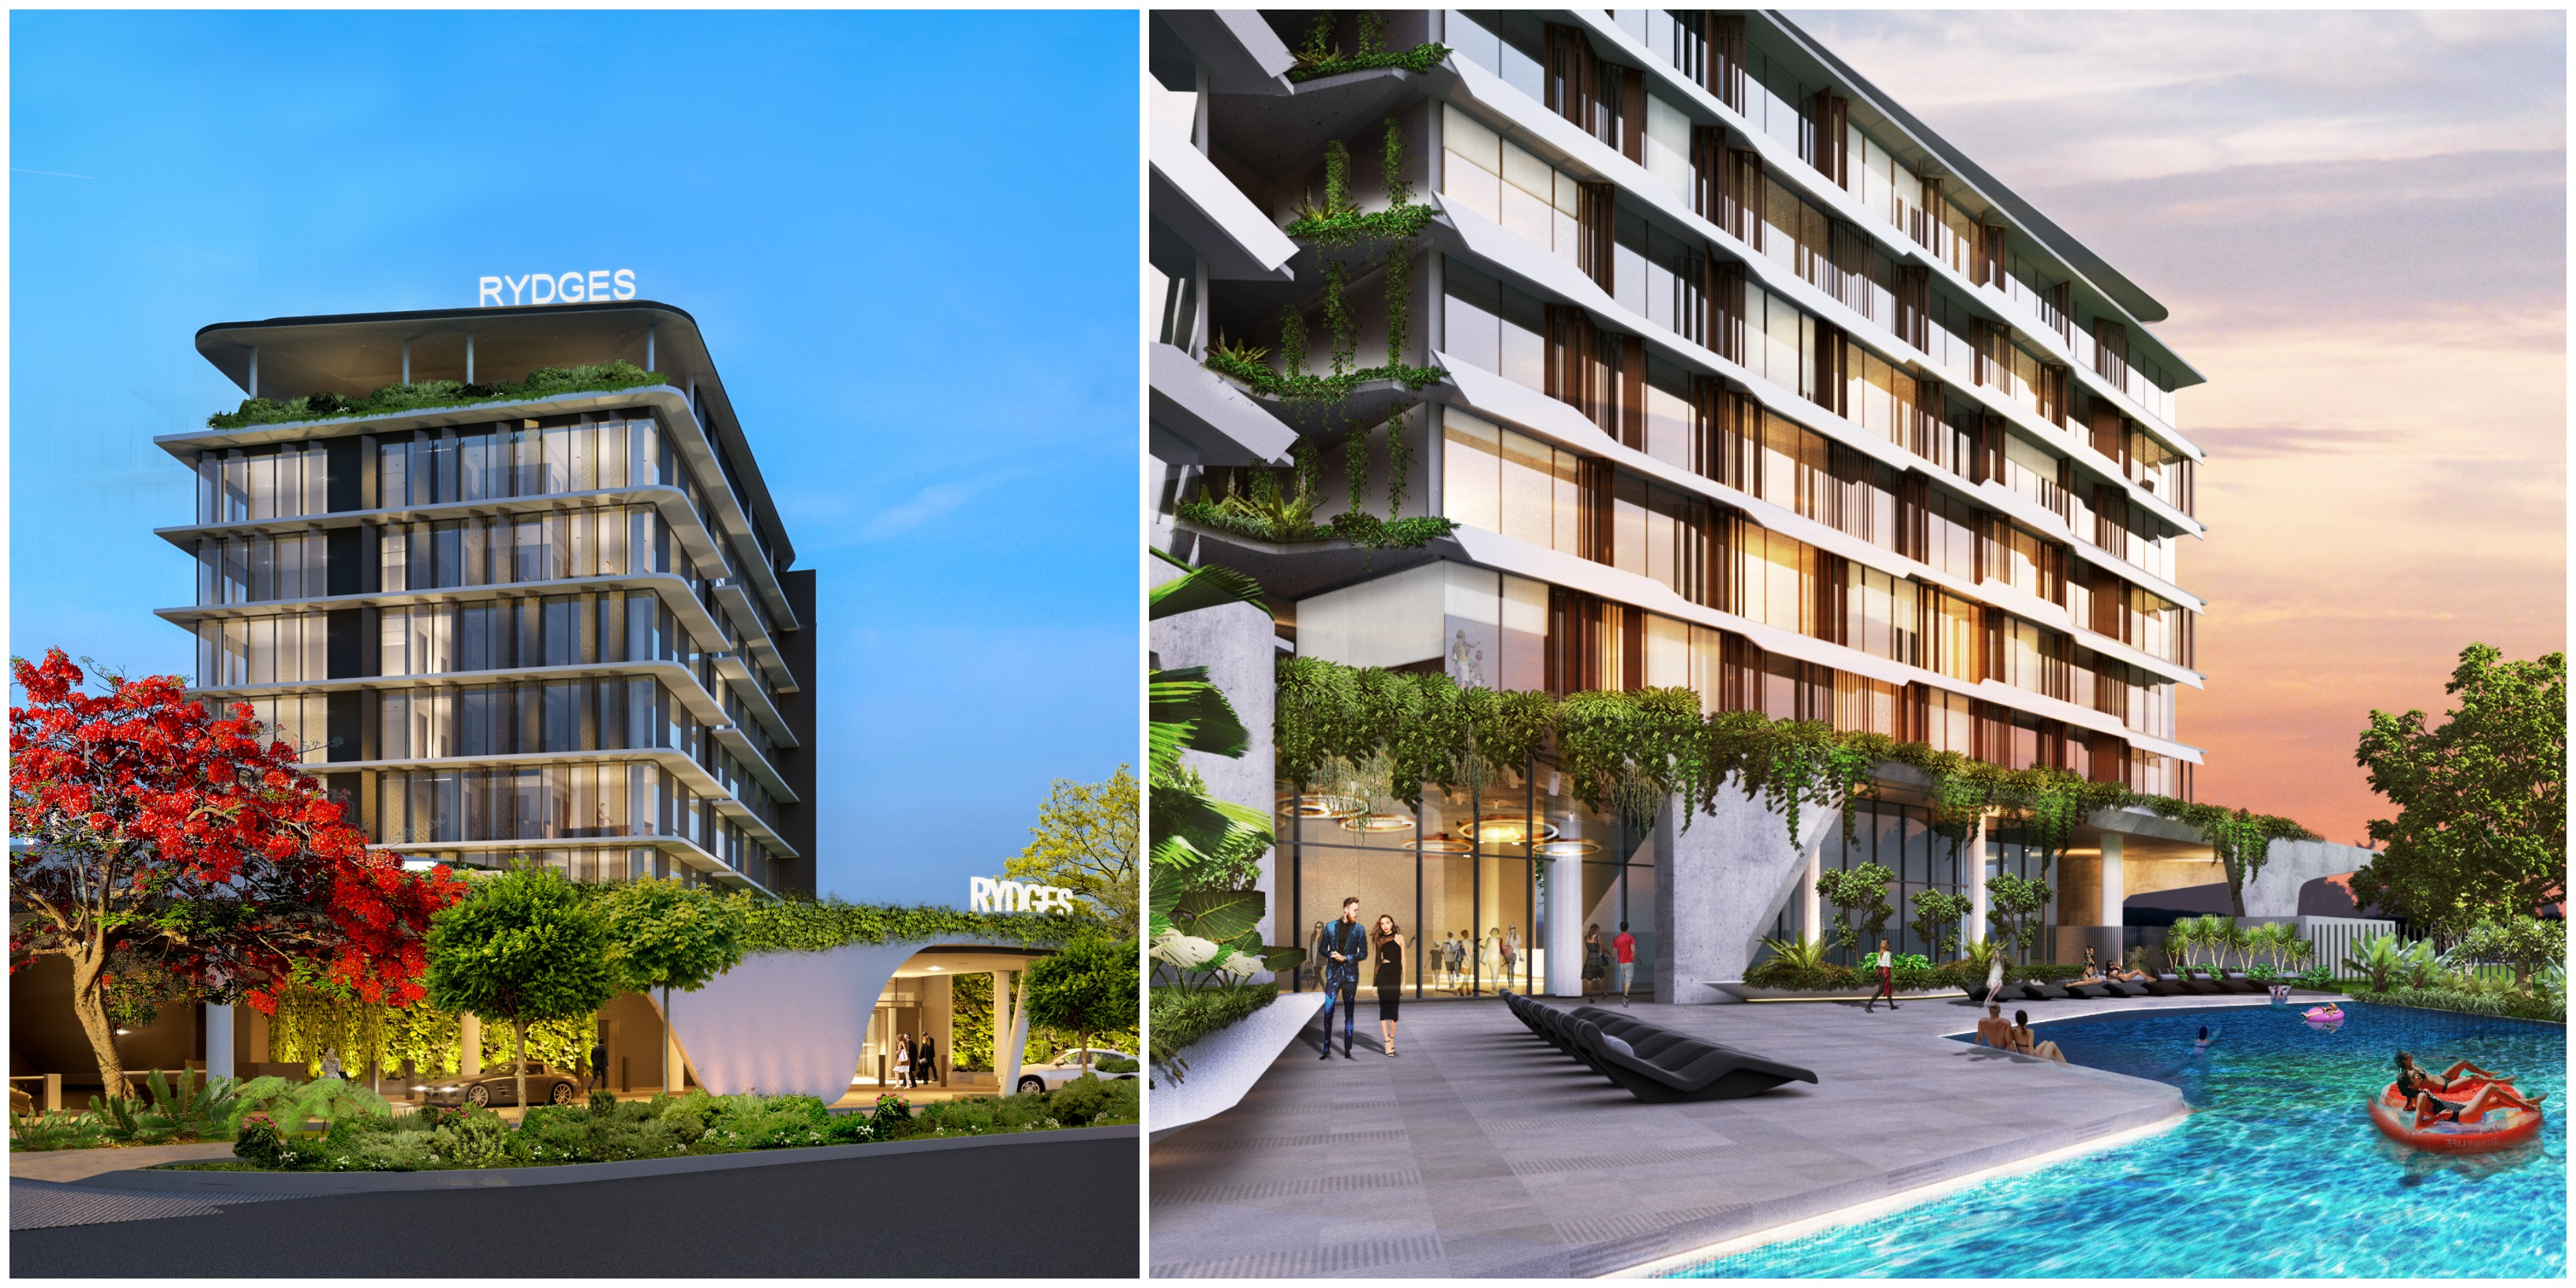 The hotel development, which will have views over Kirra beach and the airport runway, will create 90 construction jobs and more than 60 jobs post-construction.